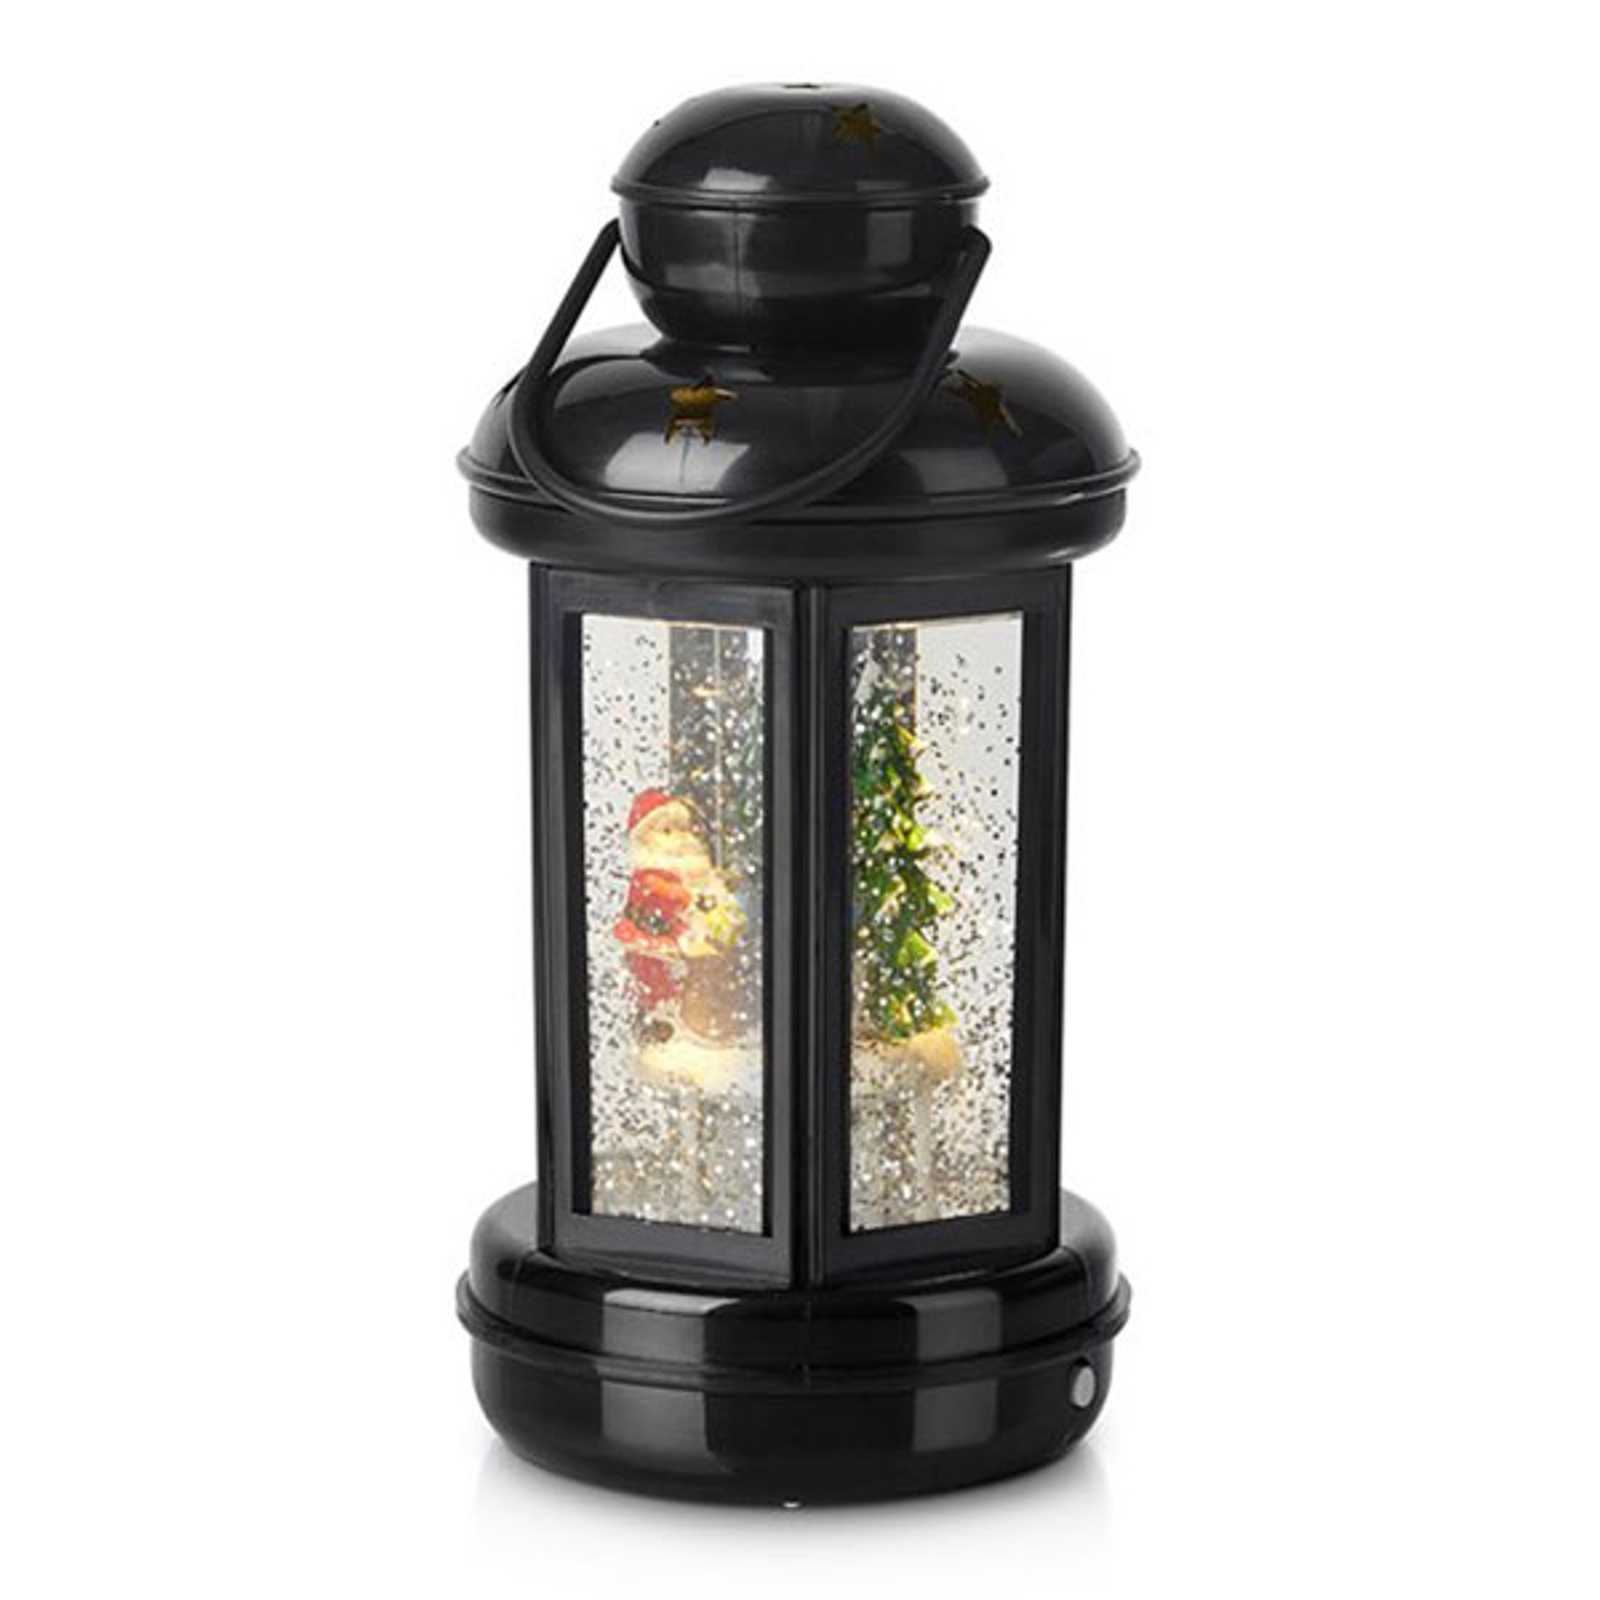 Farol decorativo con purpurina Cosy LED negro